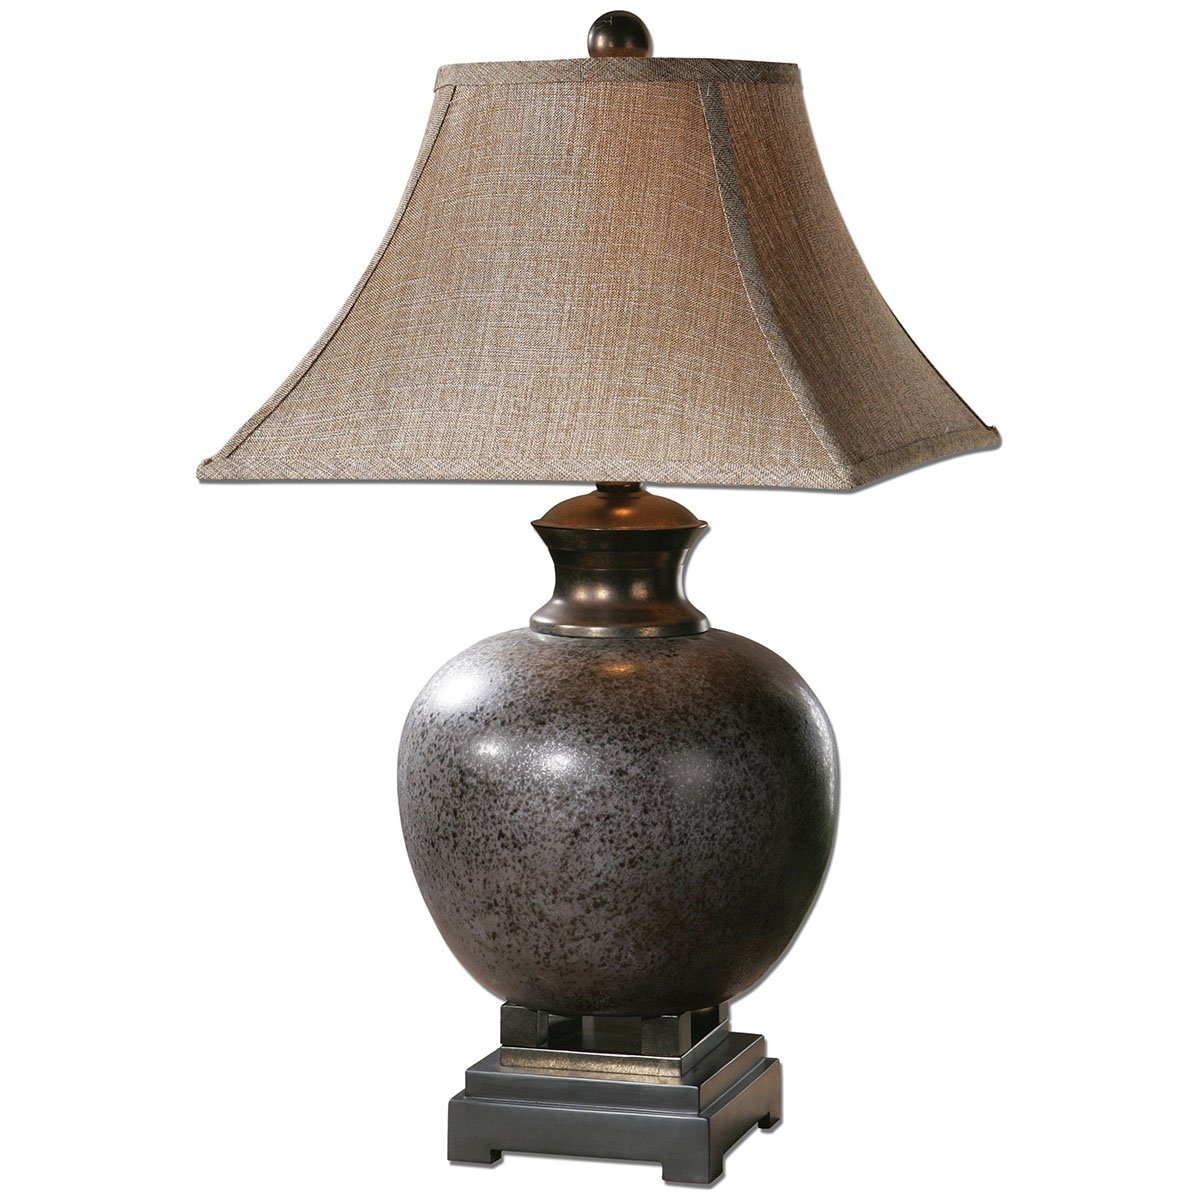 Amazon.com: Uttermost 26292 Villaga Distressed Table Lamp: Home U0026 Kitchen